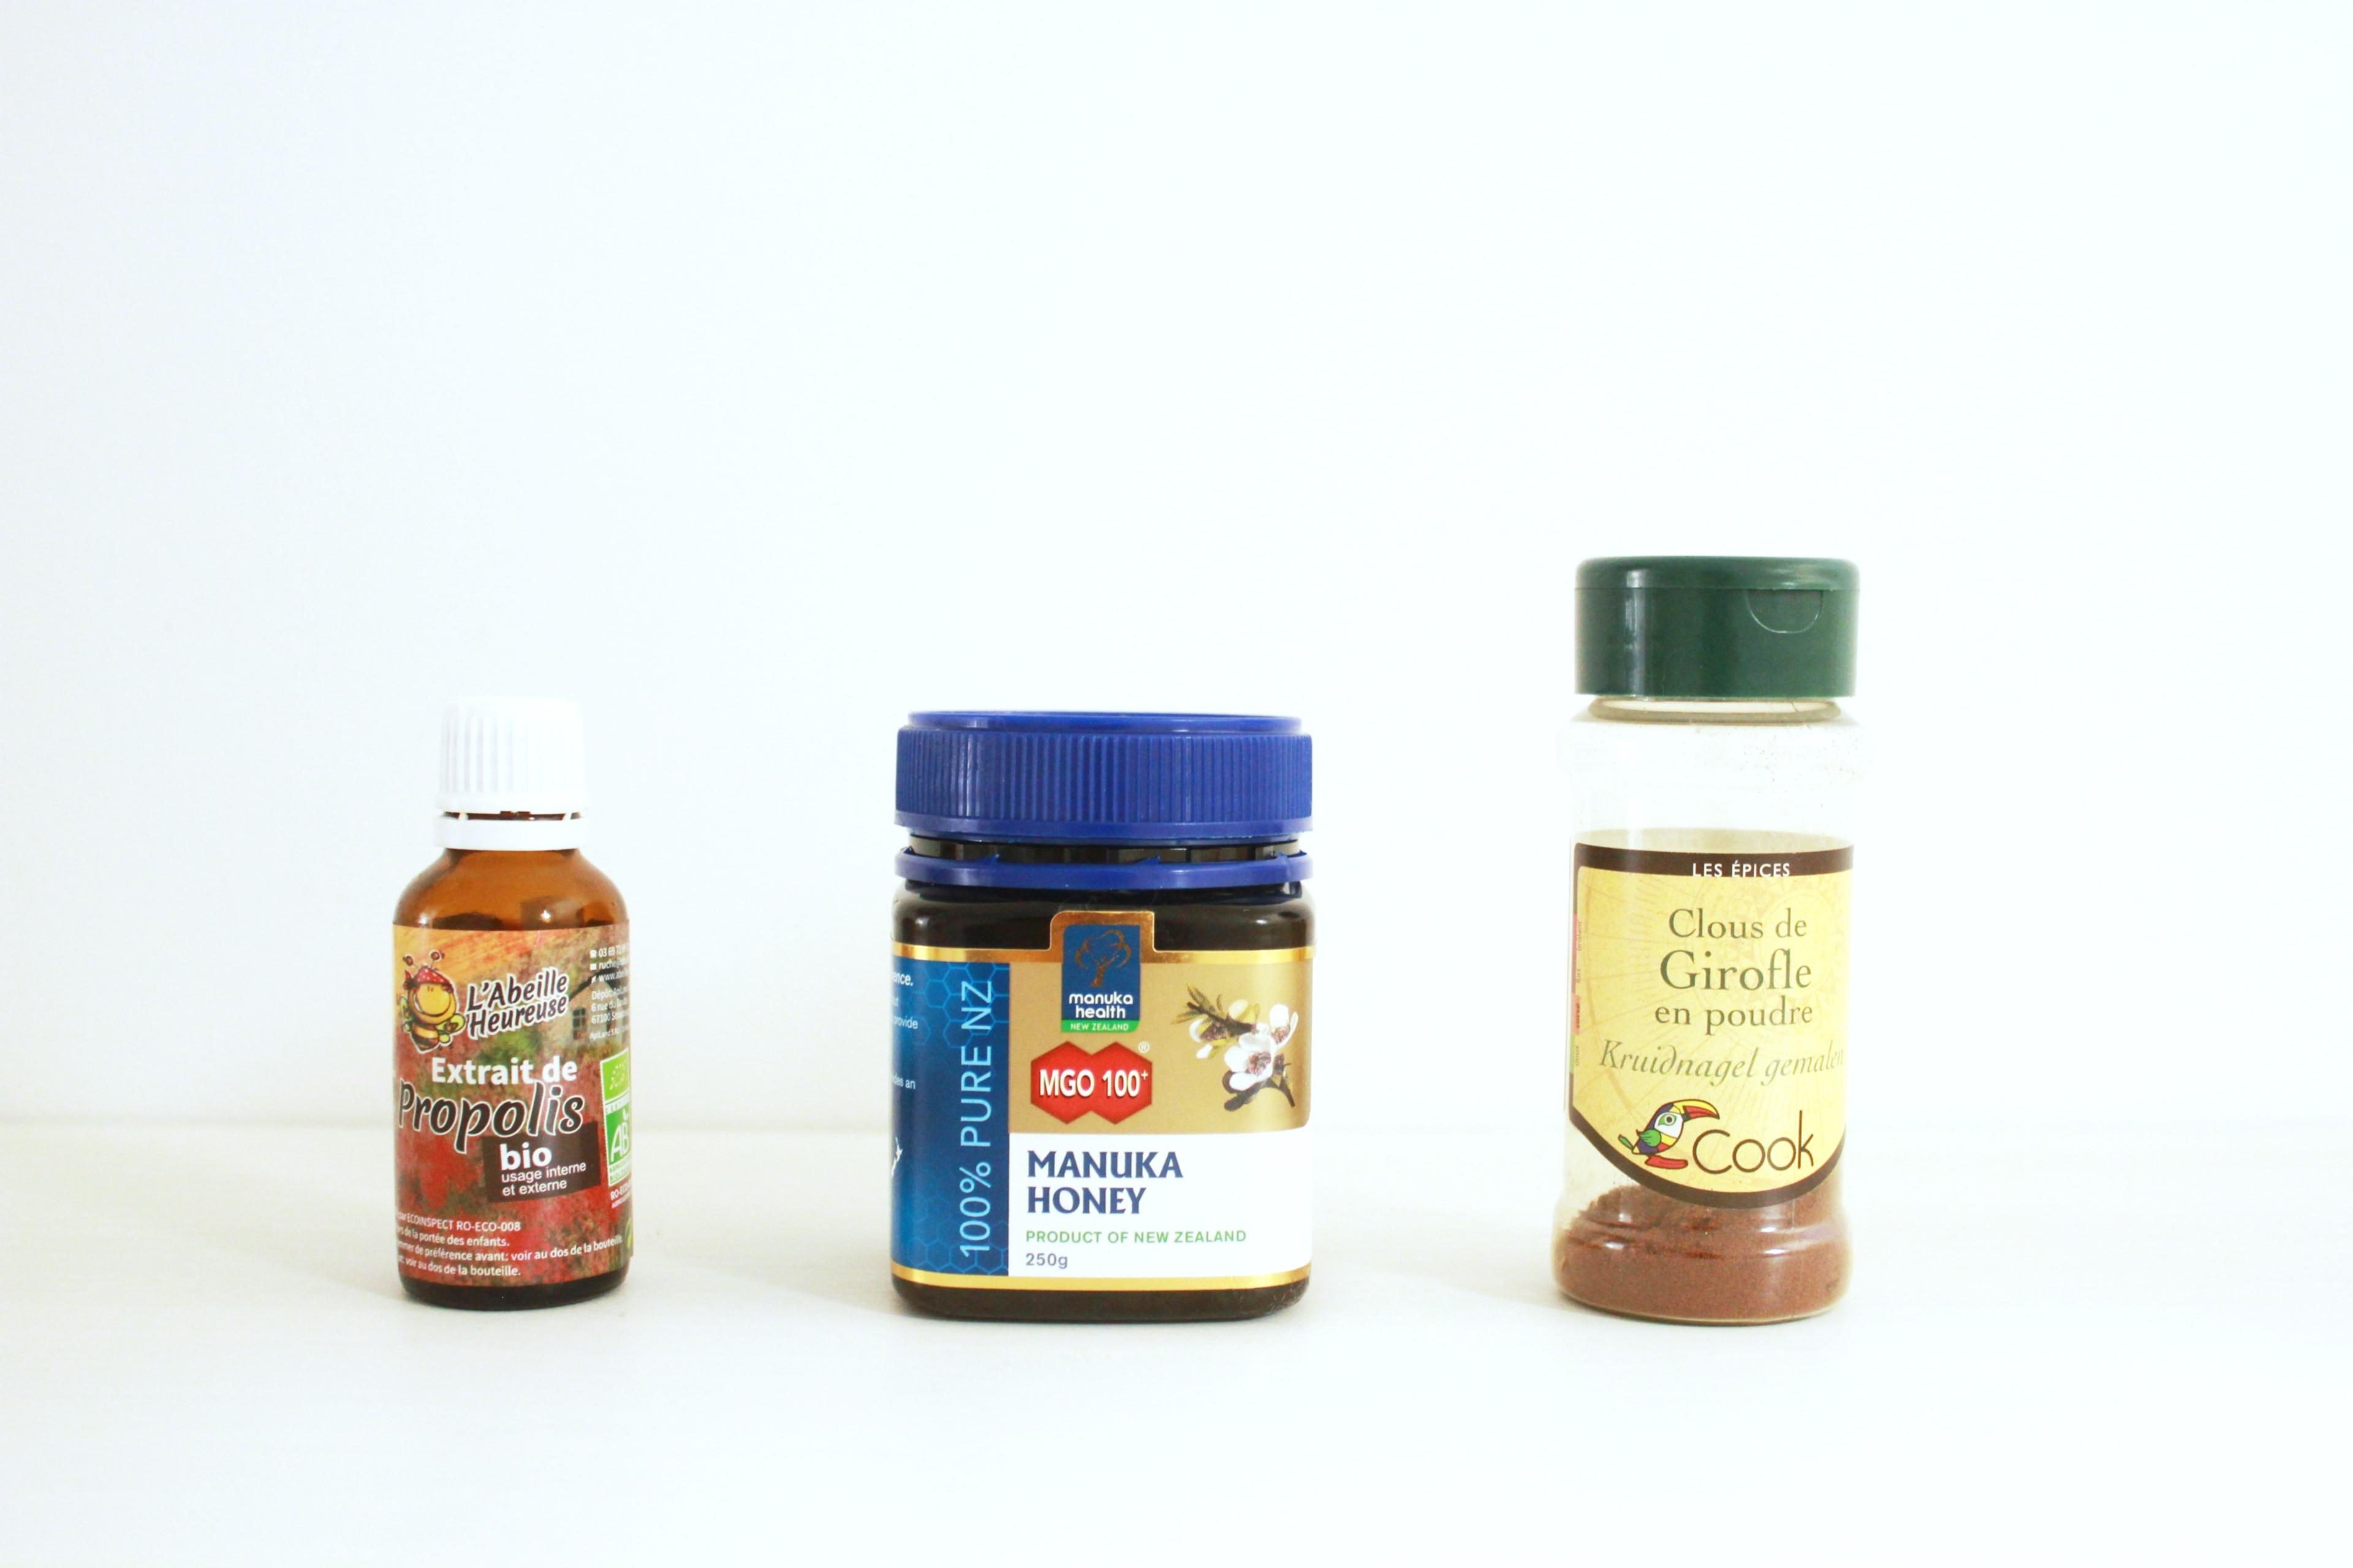 Propolis, Miel de Manuka, Clous de Girofle solution carrie